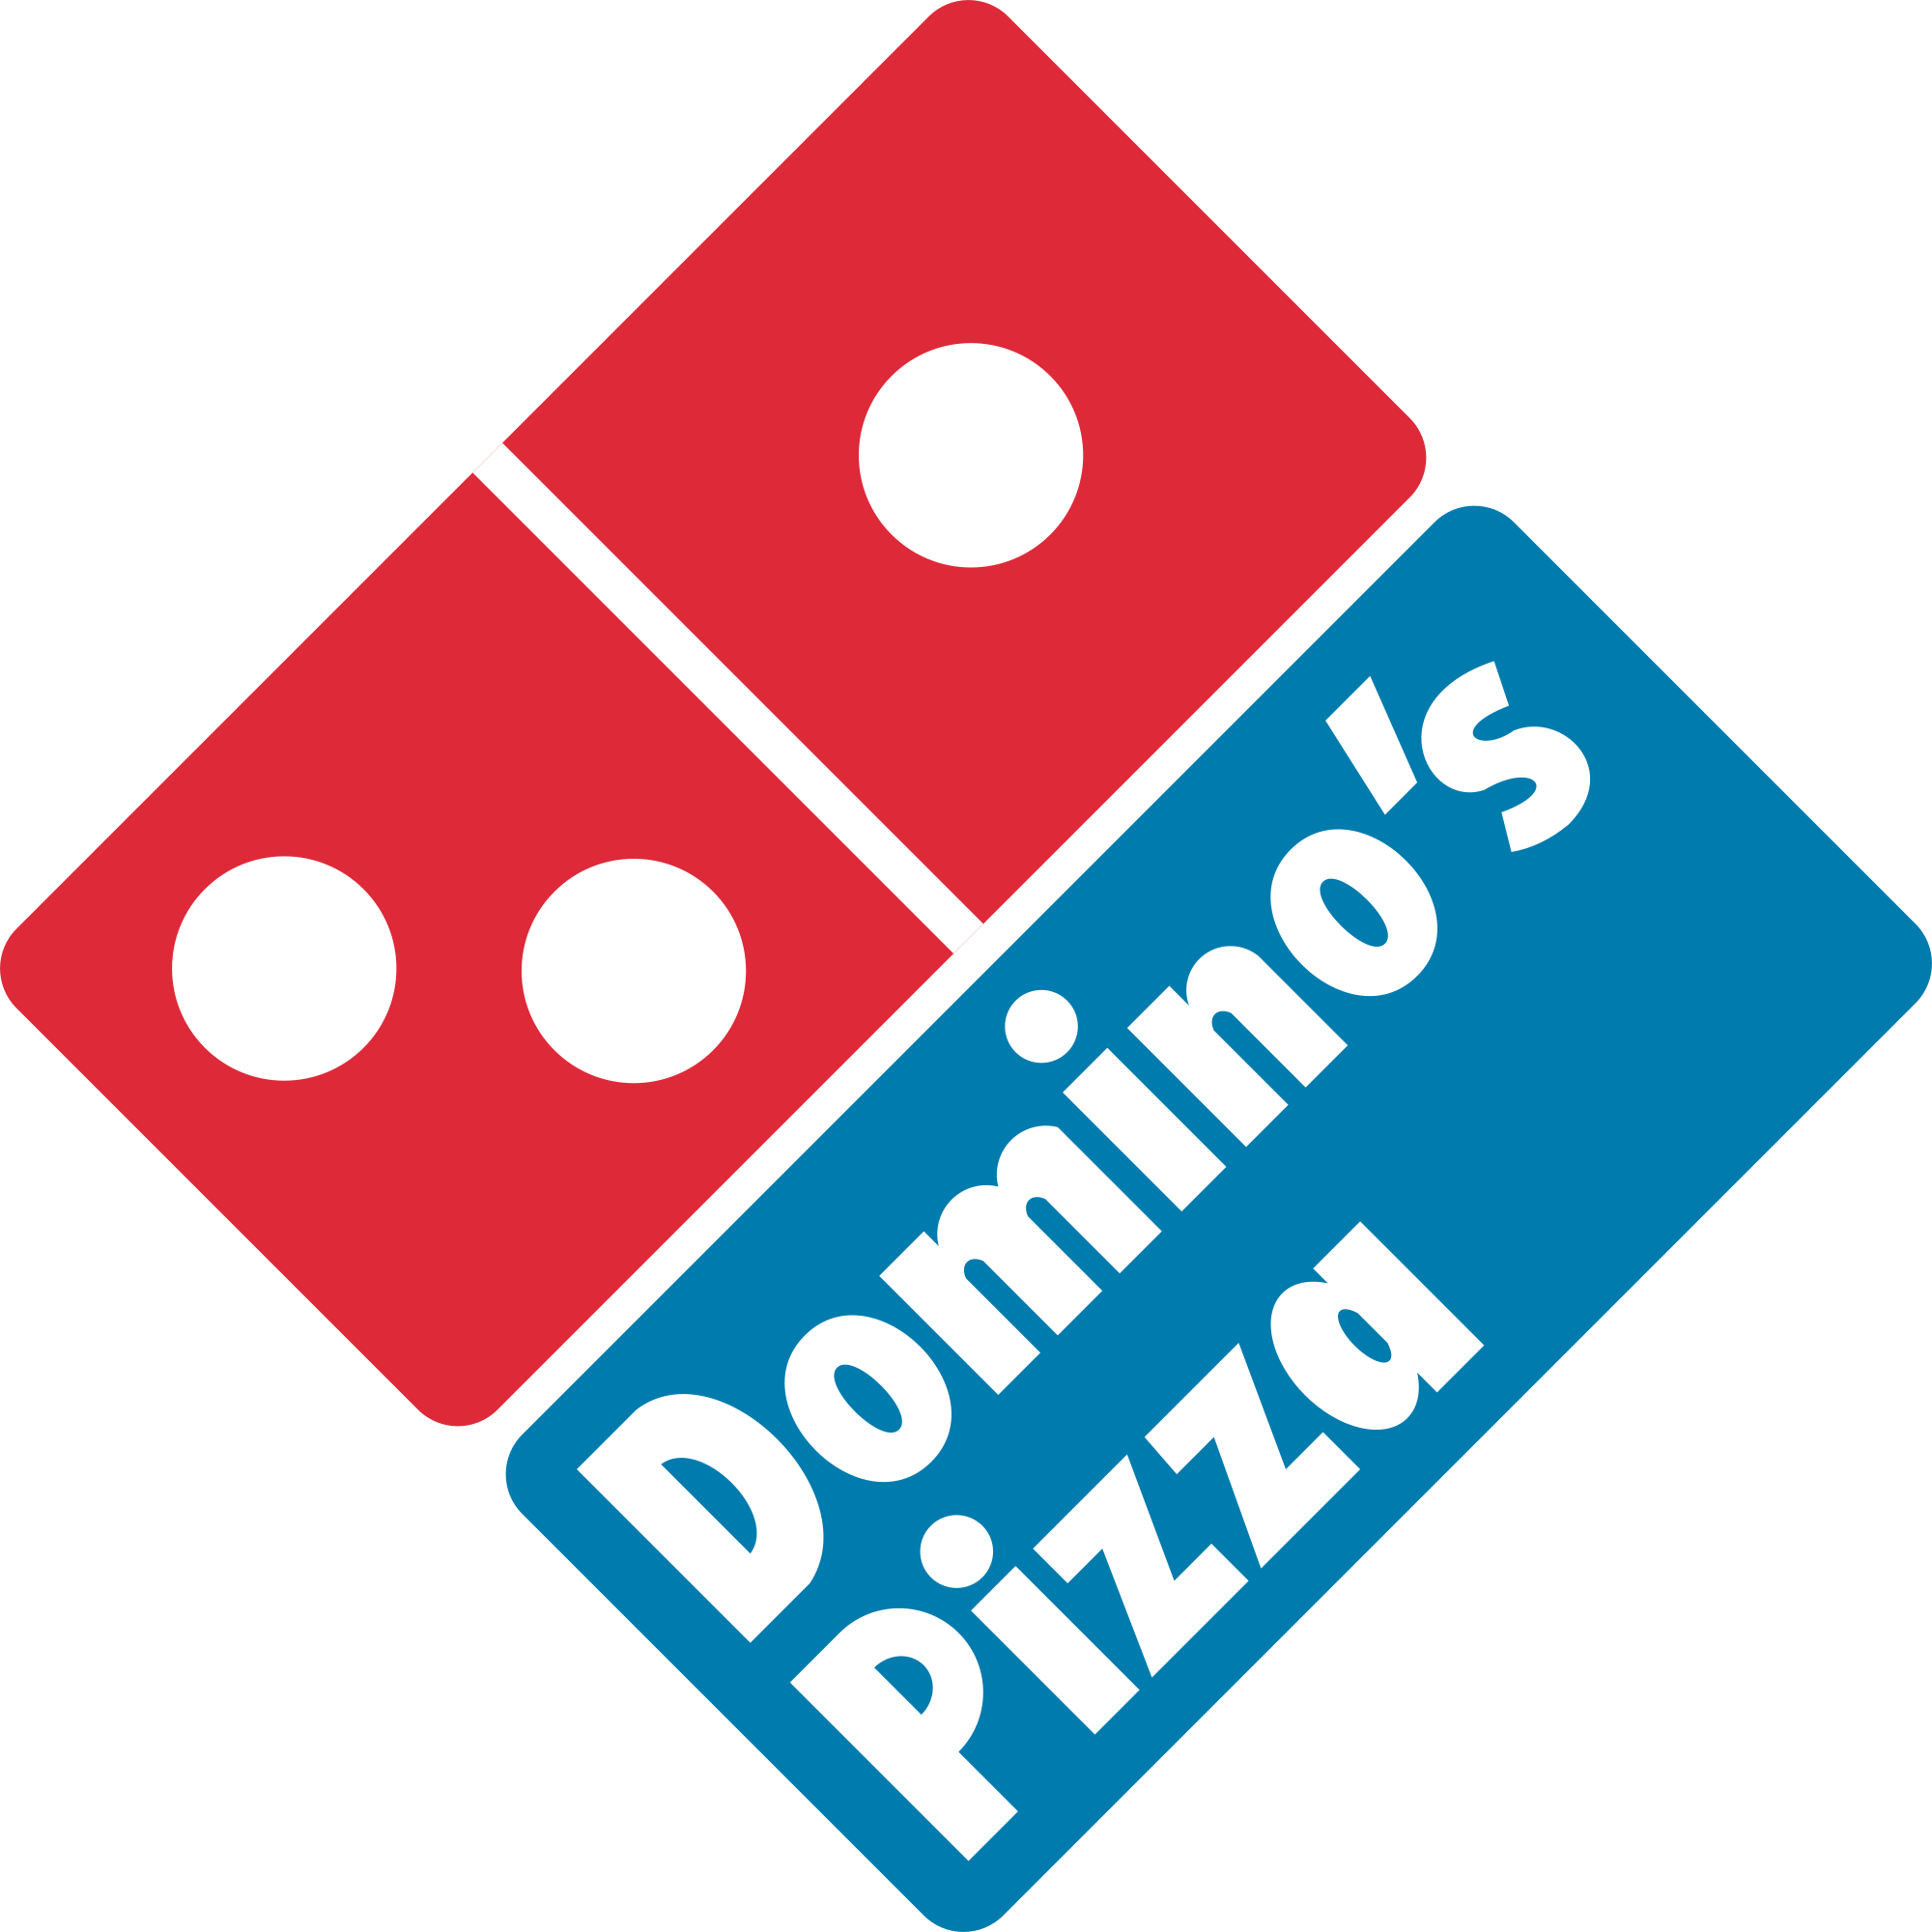 Dominou0027s Pizza Logo - Burger King Logo PNG